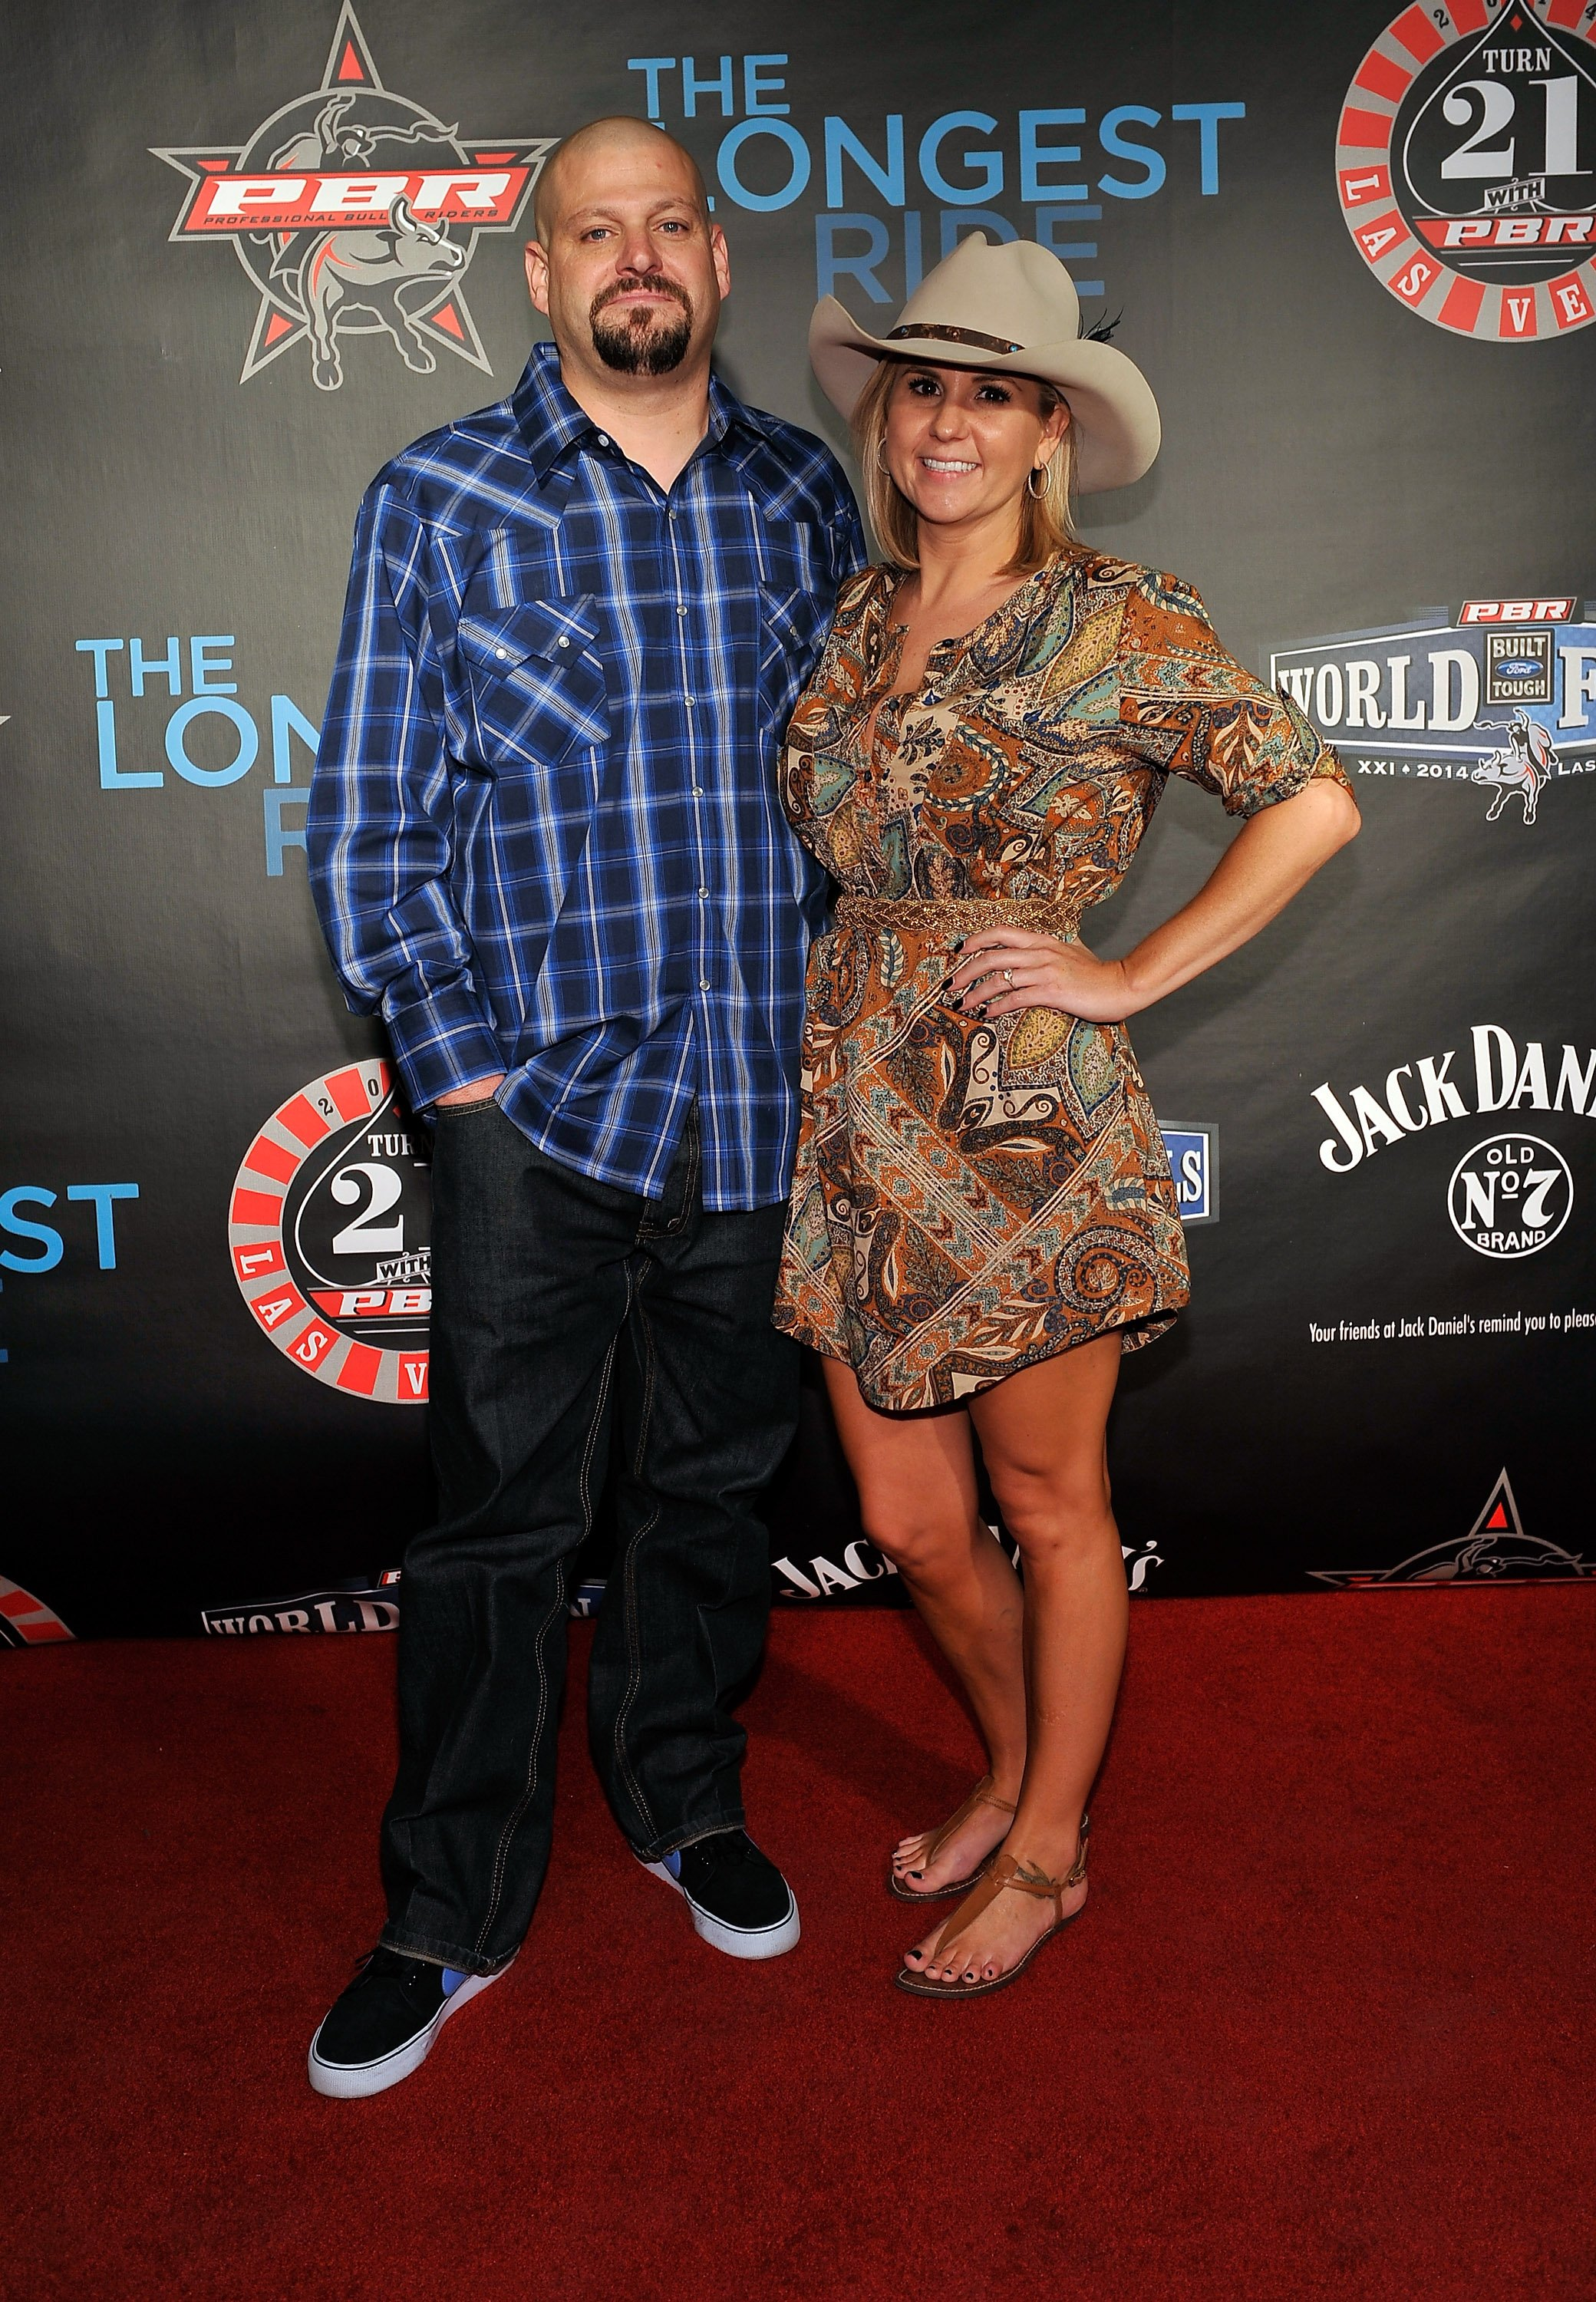 Jarrod Schulz (L) and Brandi Passante attend the Professional Bull Riders Official PBR 21st Birthday Party at the Mandalay Bay Resort and Casino on October 25, 2014 in Las Vegas, Nevada.  | Photo: GettyImages